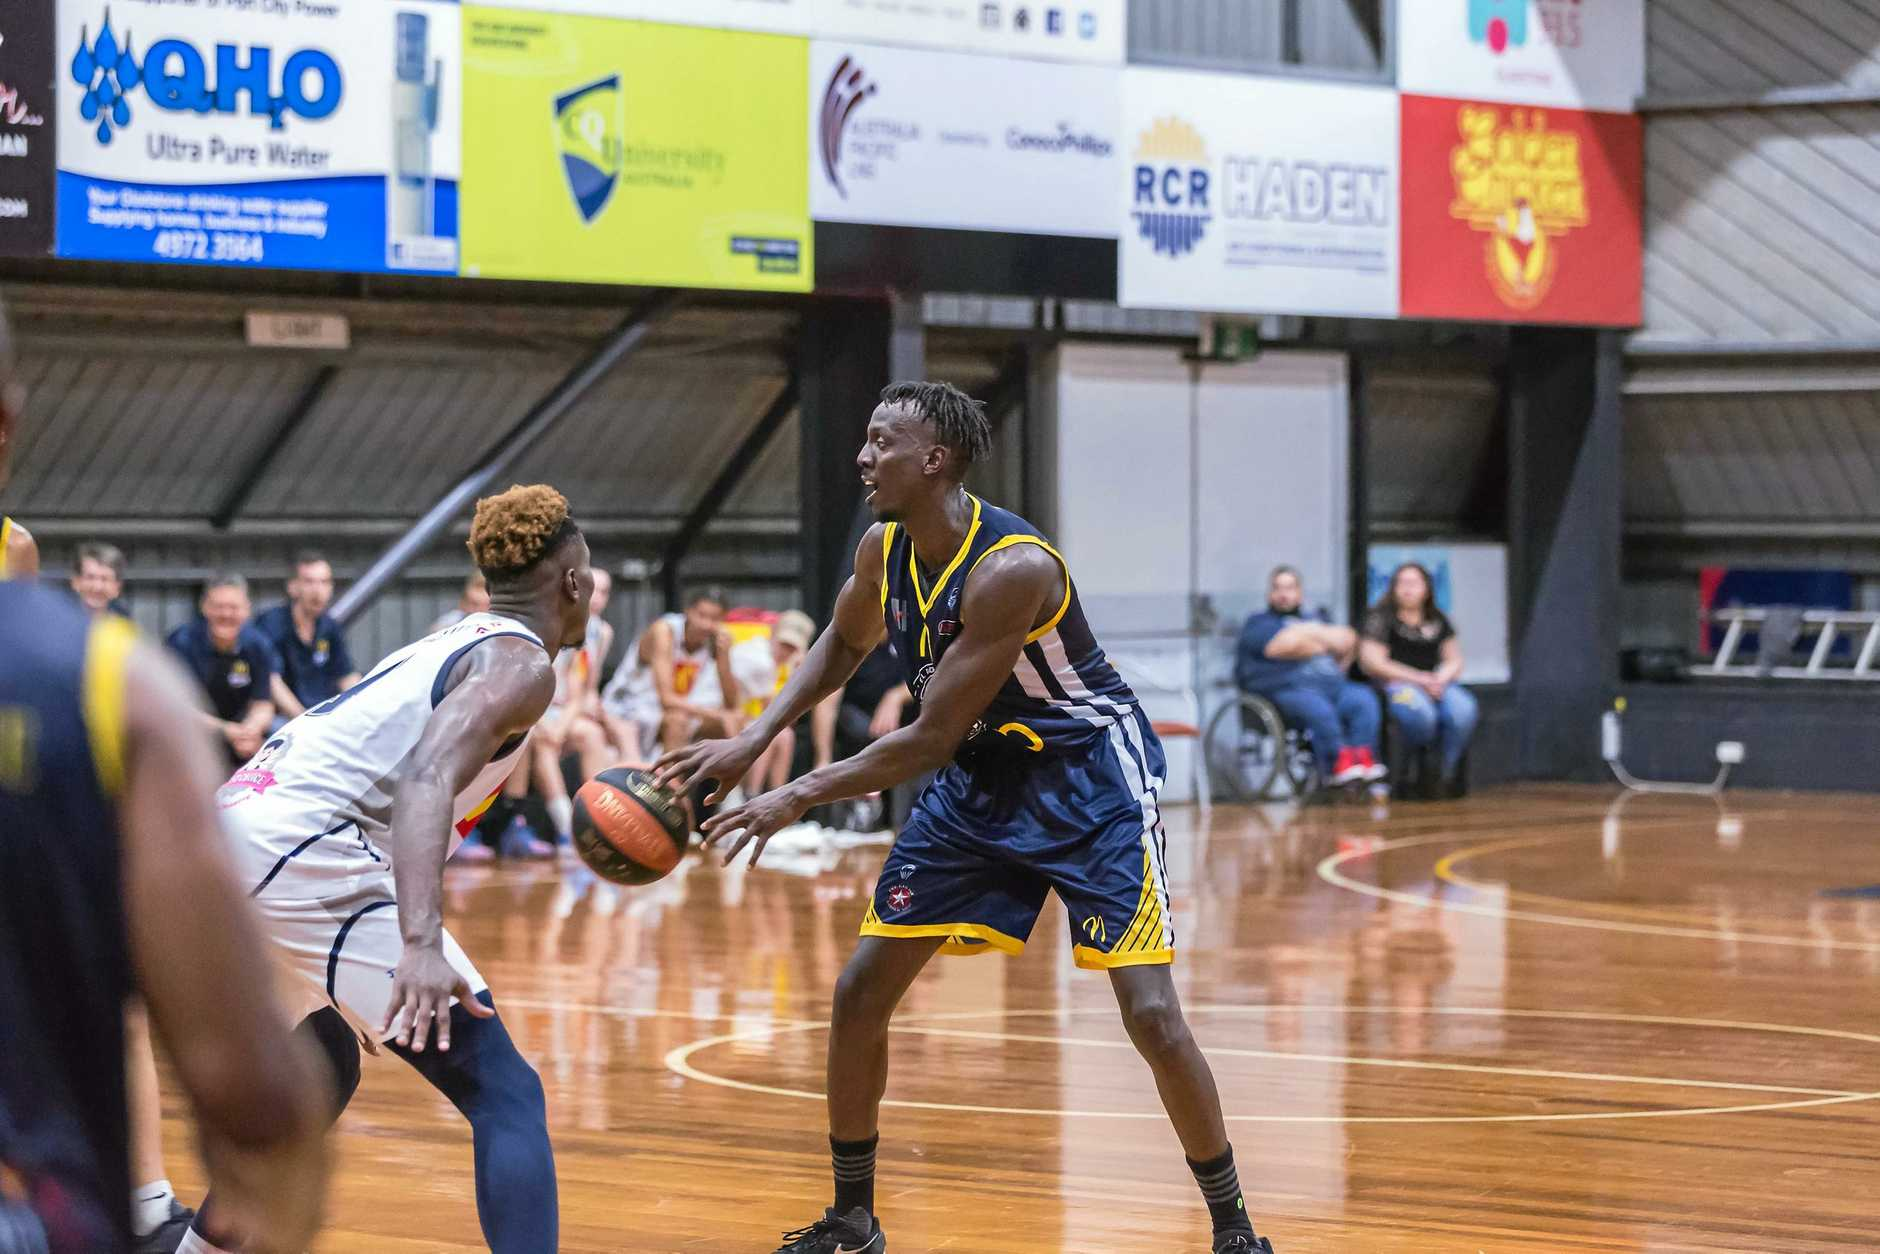 Import Cirkook 'Shaq' Riak has impressed in his two games for Port City.